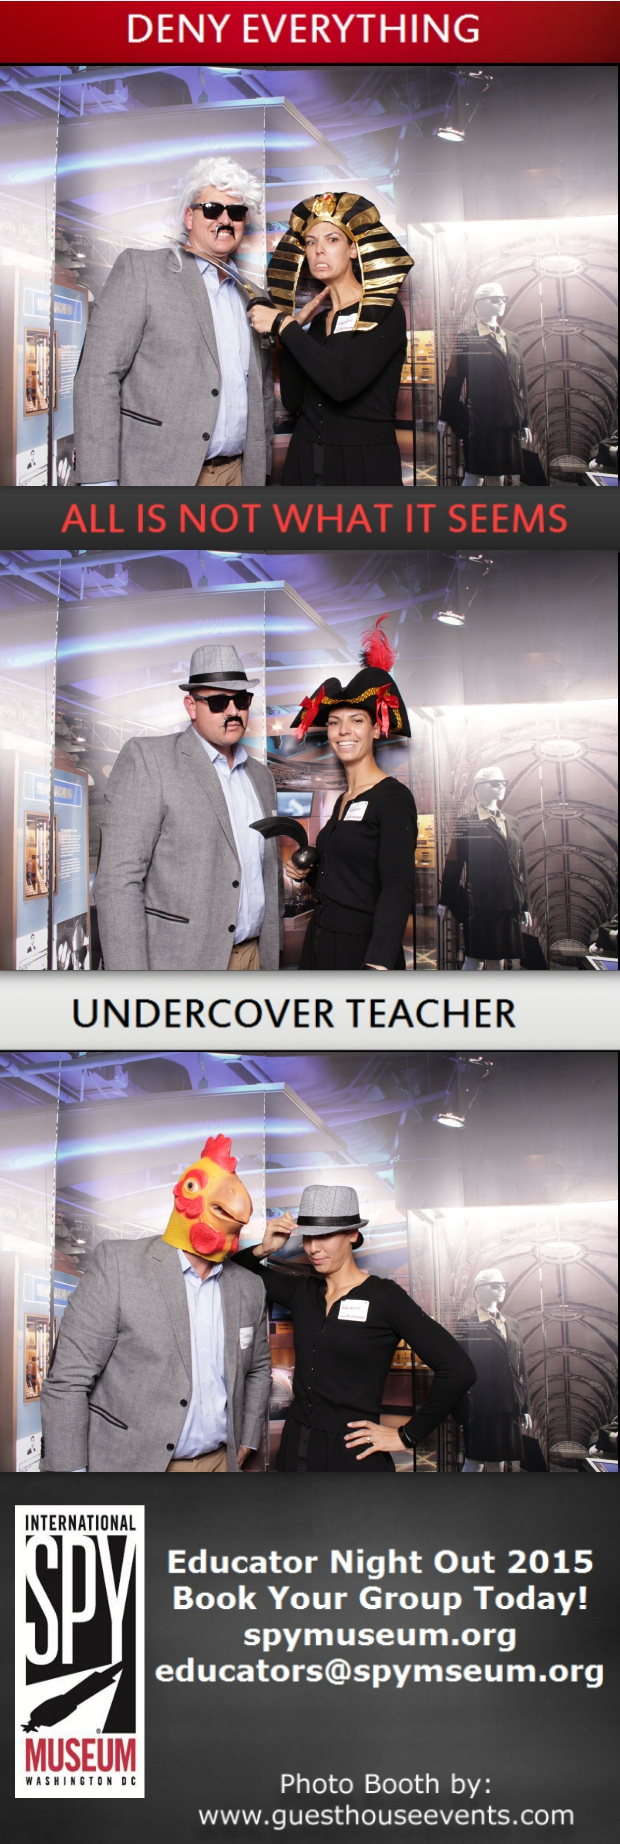 Guest House Events Photo Booth Spy Museum Educator Night Out (83).jpg